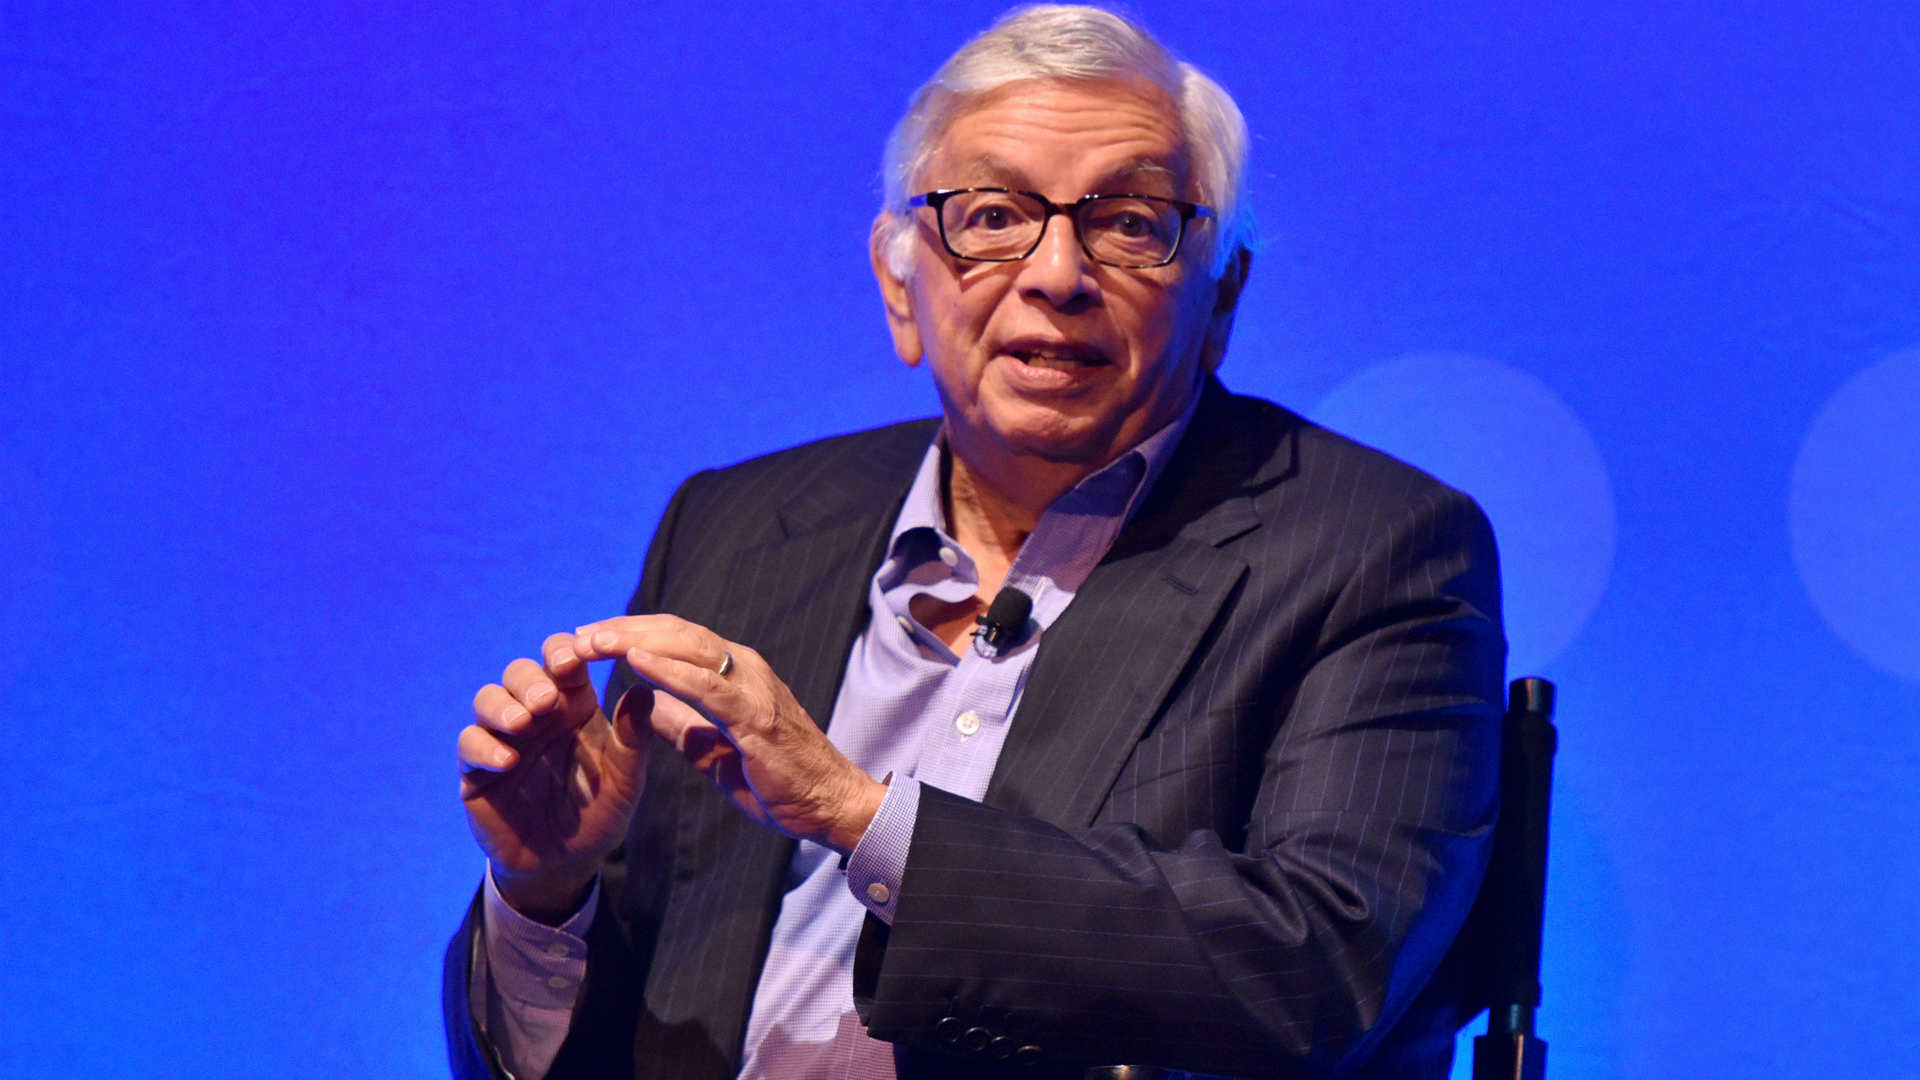 David Stern says marijuana 'should be removed from ban list'